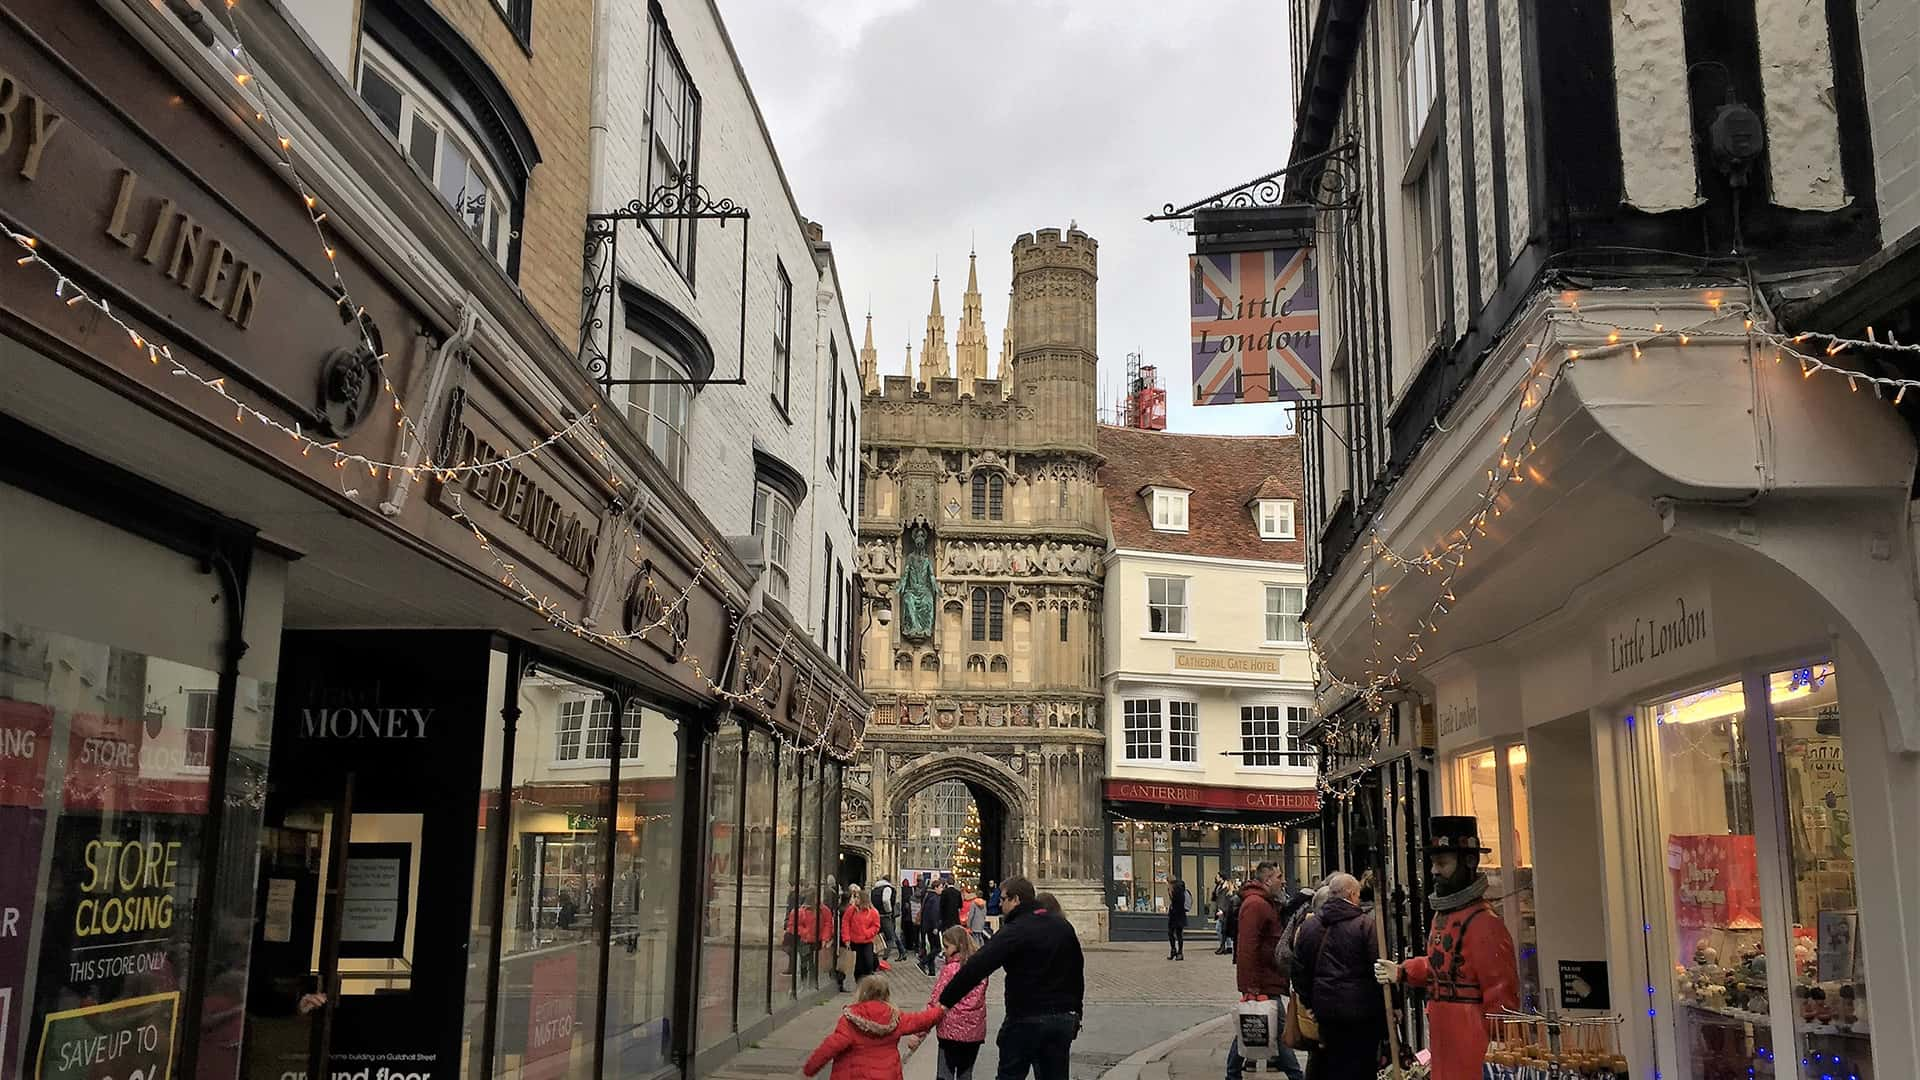 Canterbury Tour In the city